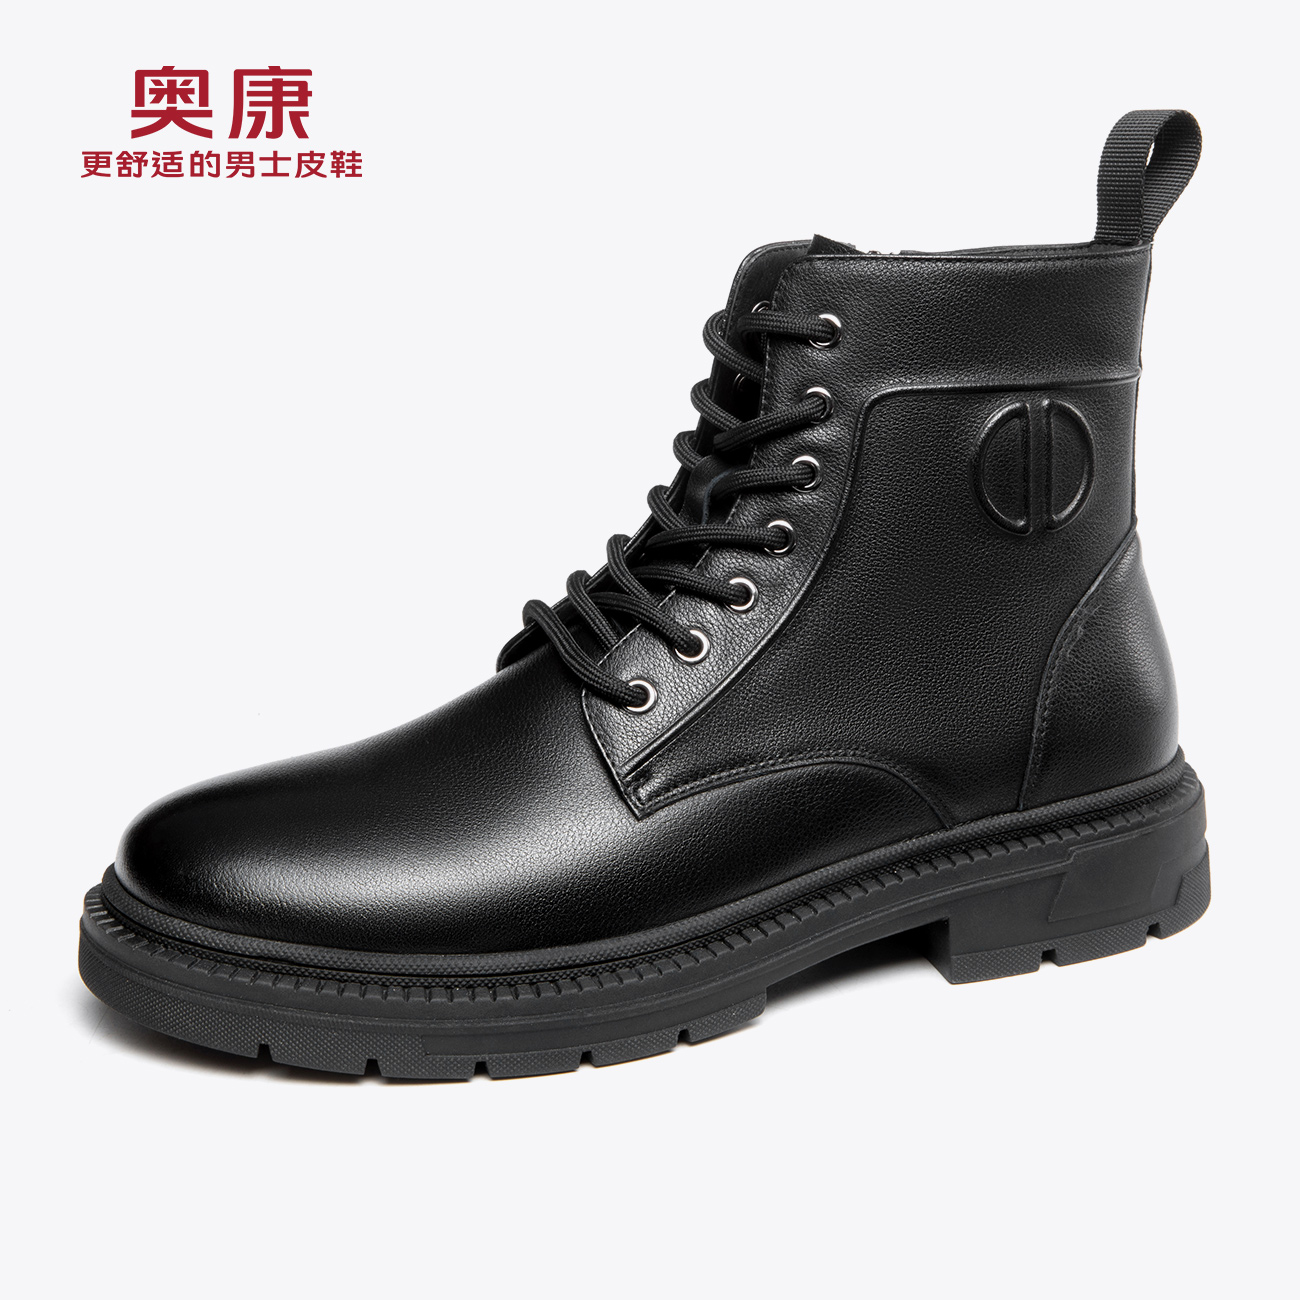 Aokang mens shoes 2021 winter new leather Martin boots casual shoes British Wind work clothes shoes fashion mens Boots